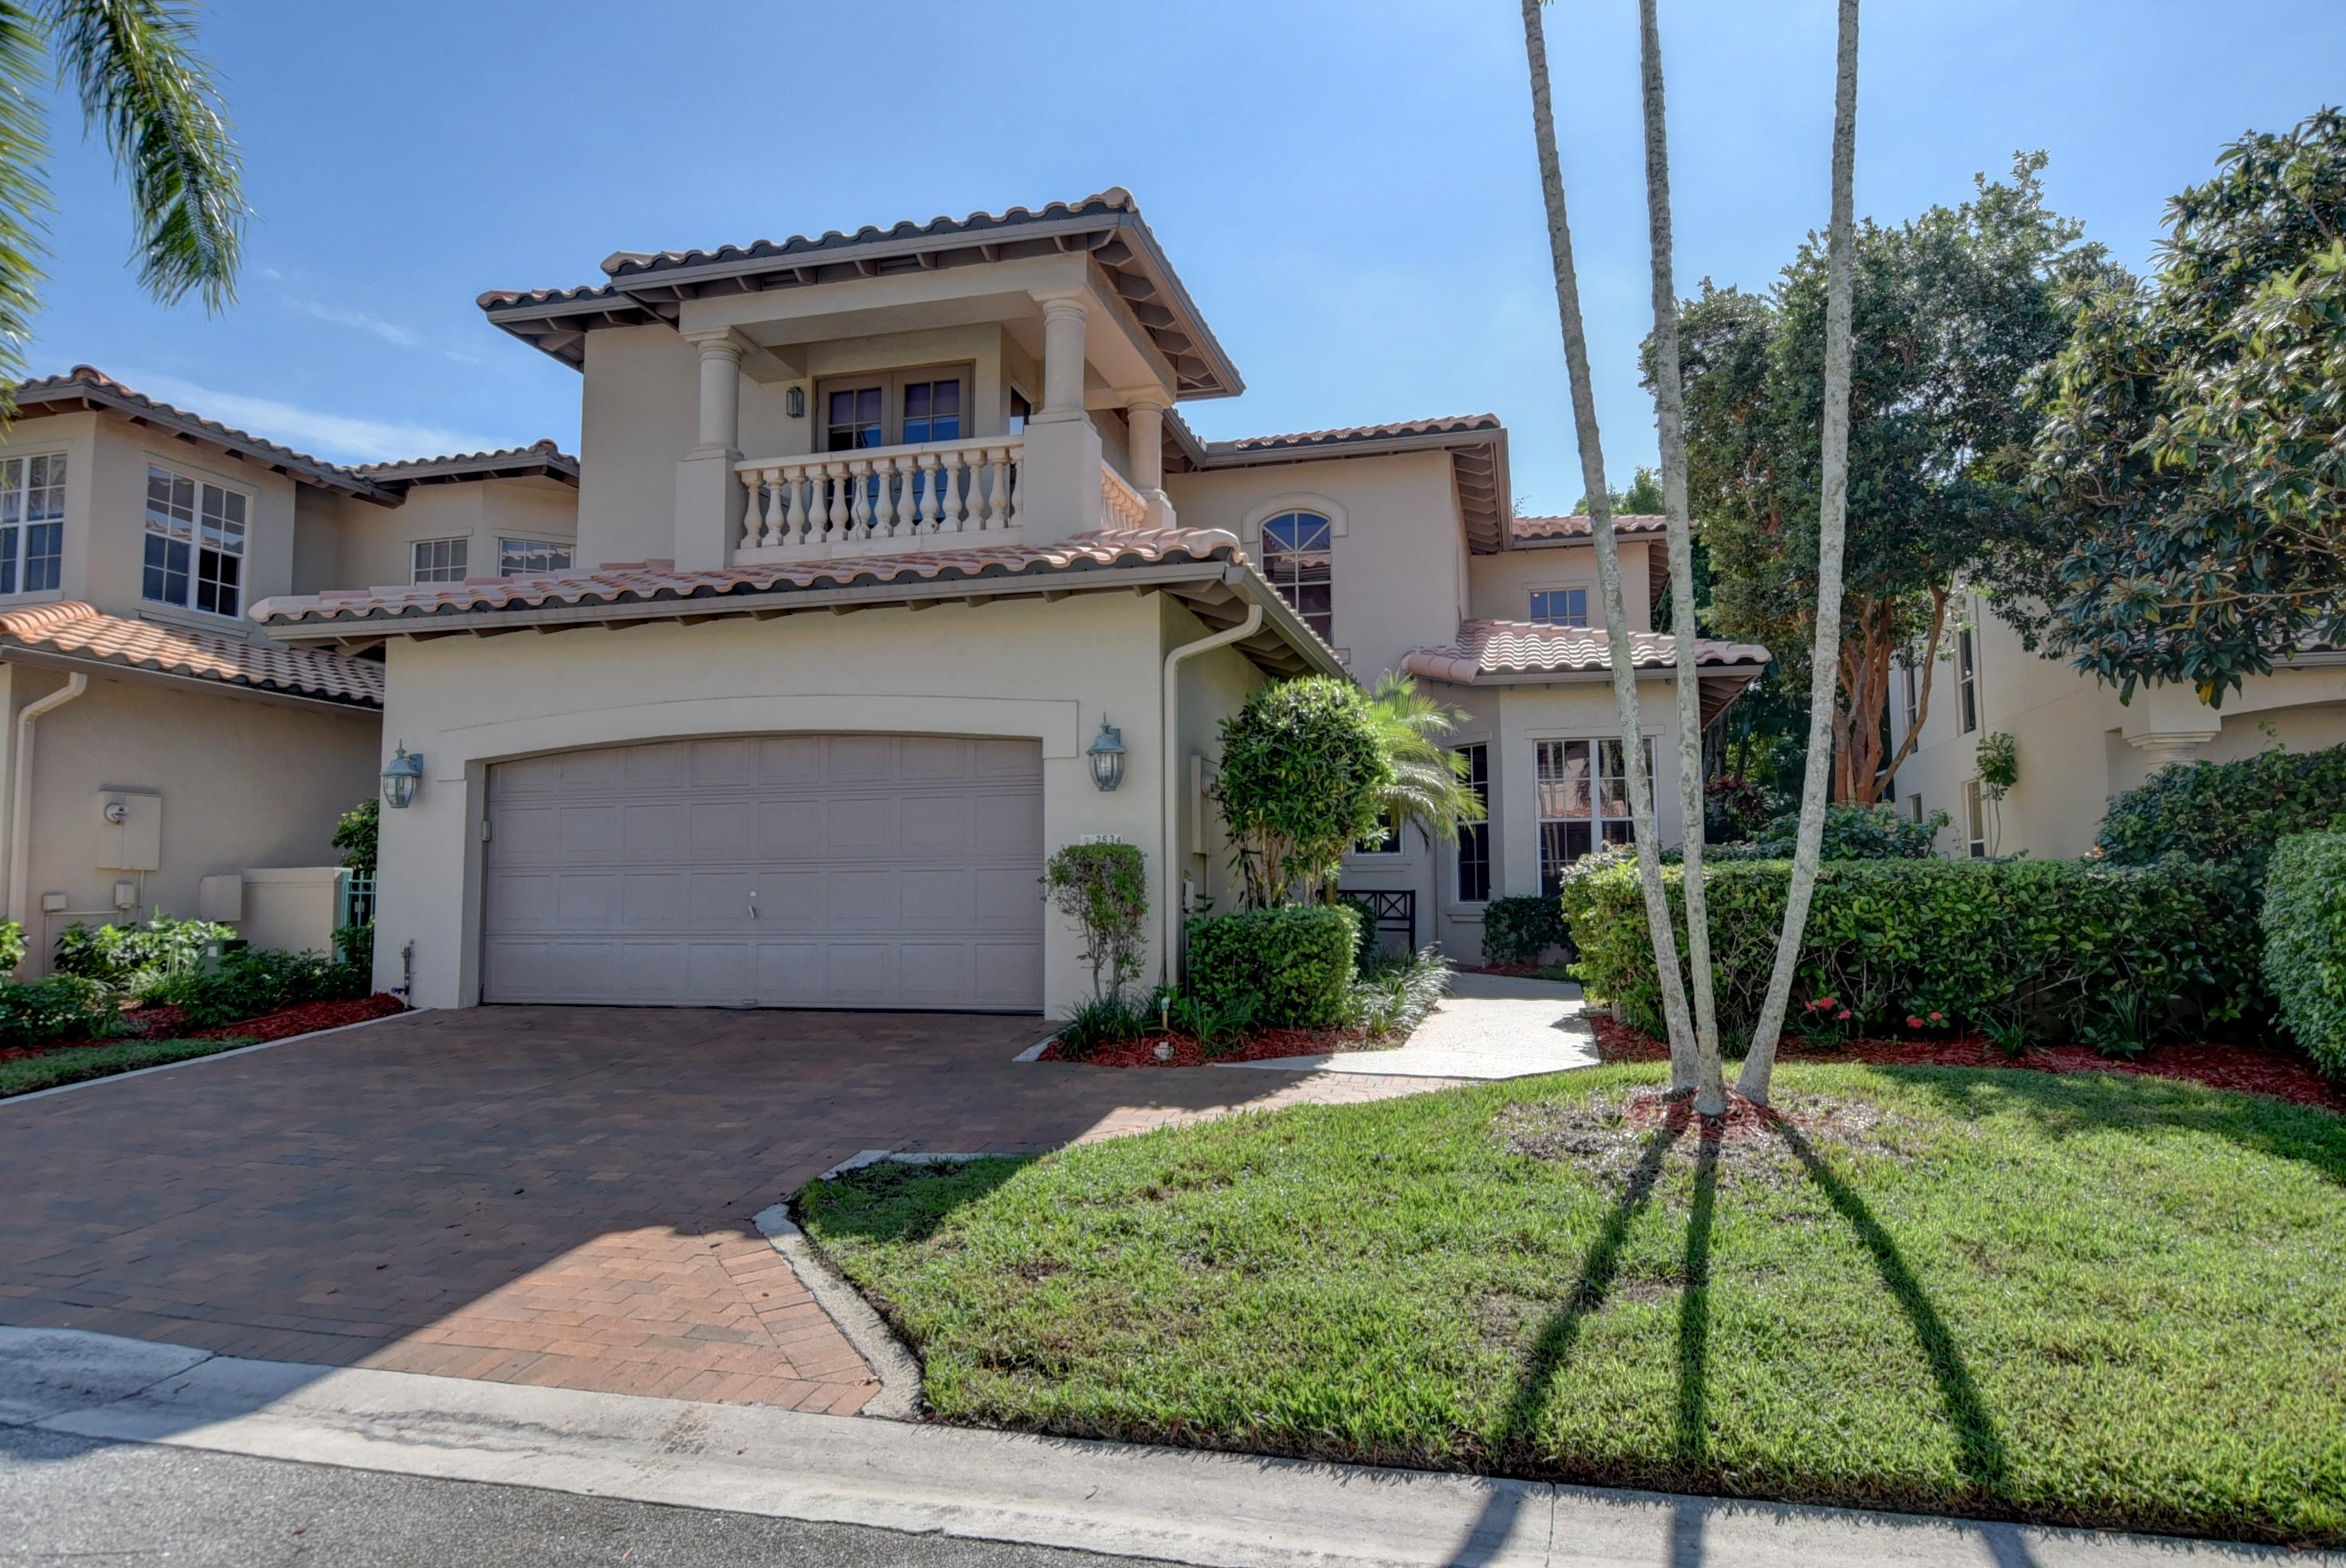 Details for 2534 52nd Street Nw, Boca Raton, FL 33496